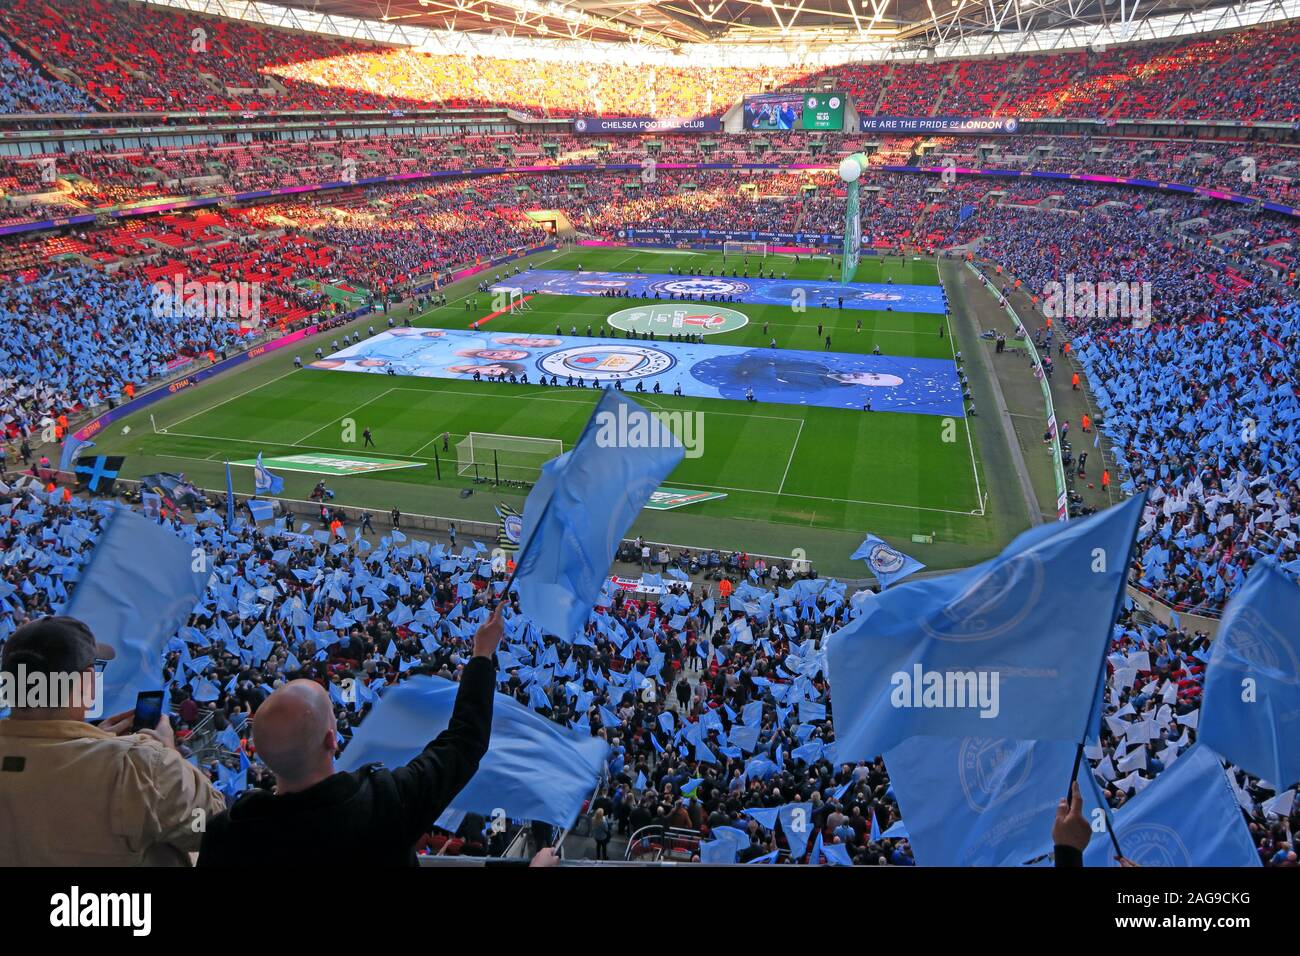 Dieses Stockfoto: MCFC, Manchester City, Manchester City Football Club vs Chelsea, Carabao Cup Finale 24/02/2019 Wembley Stadion, London, England, UK-Feb 2019 - 2AG9CK